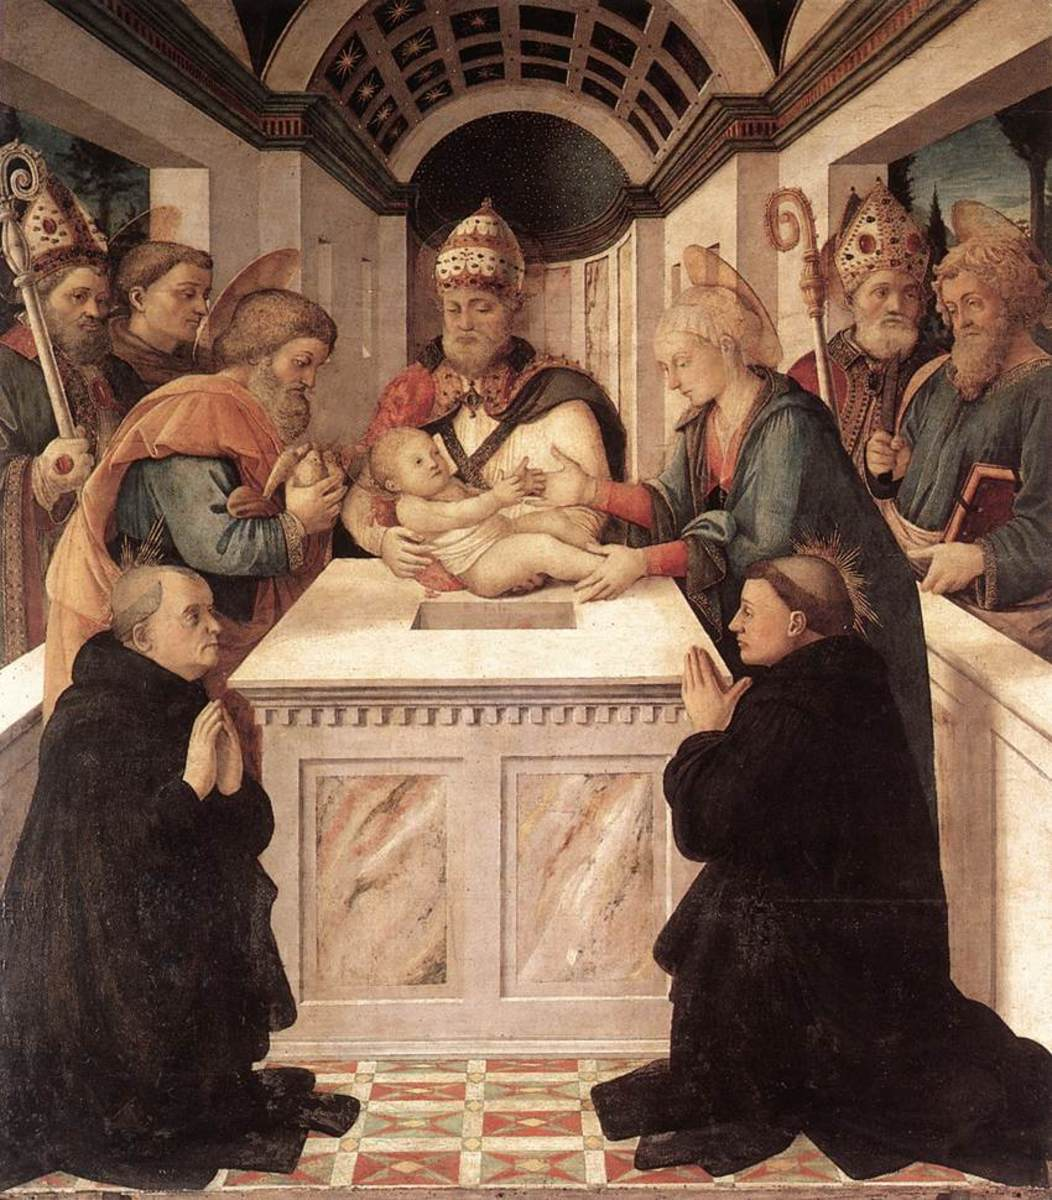 15th century rendering of The Presentation by Filippo Lippi. Saint Peregrine is shown on the right.